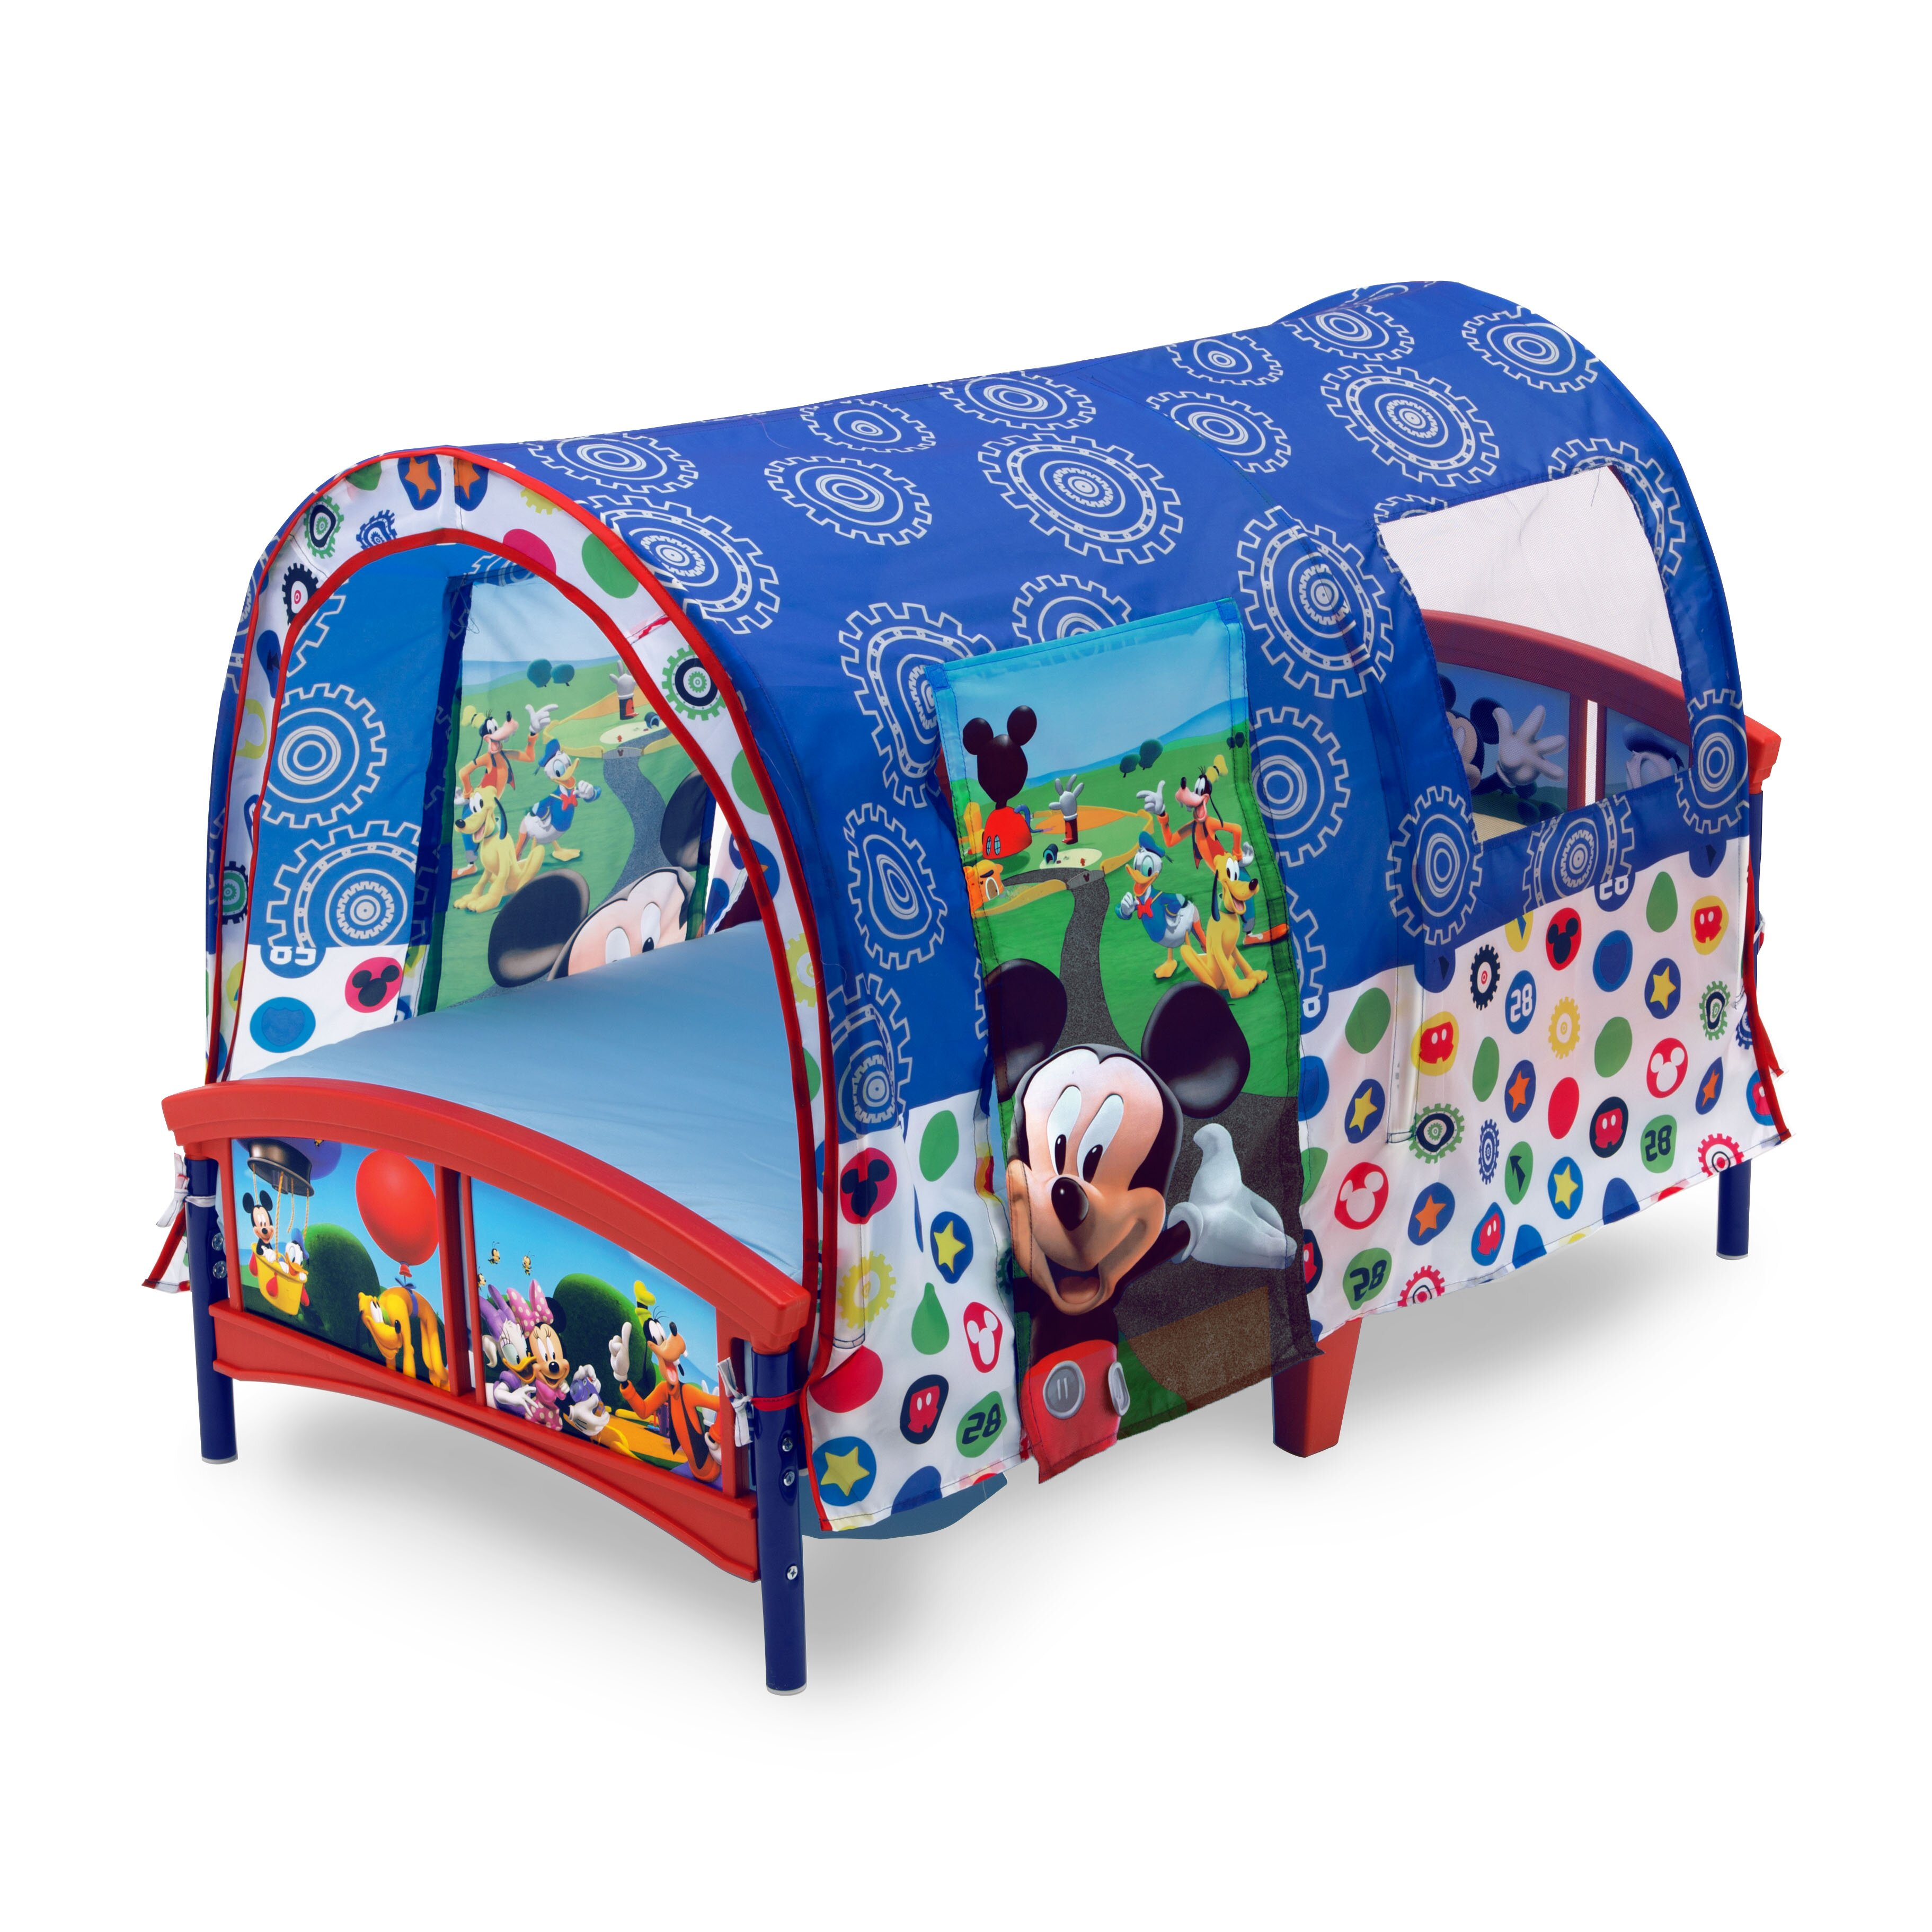 Delta Childrens Disney Mickey Mouse Toddler Bed Churchrirti